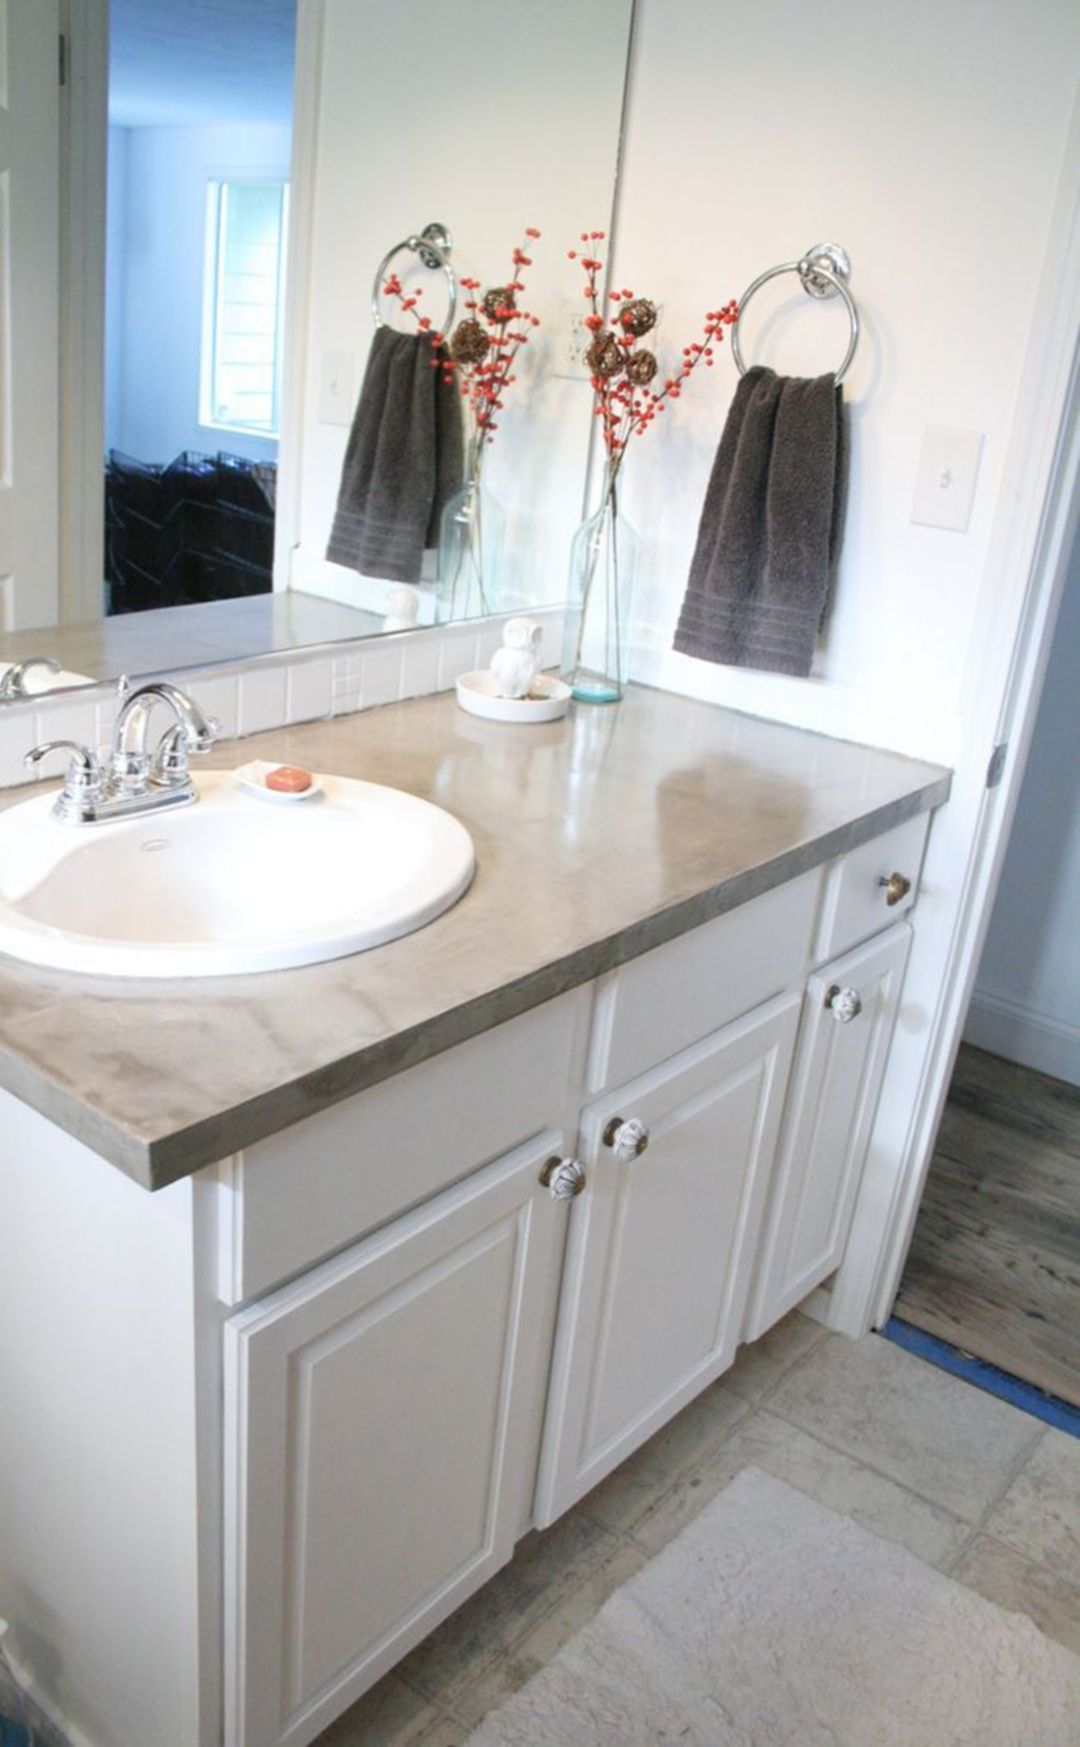 Incredible 13 Best Concrete Countertops Ideas For Bathroom In 2020